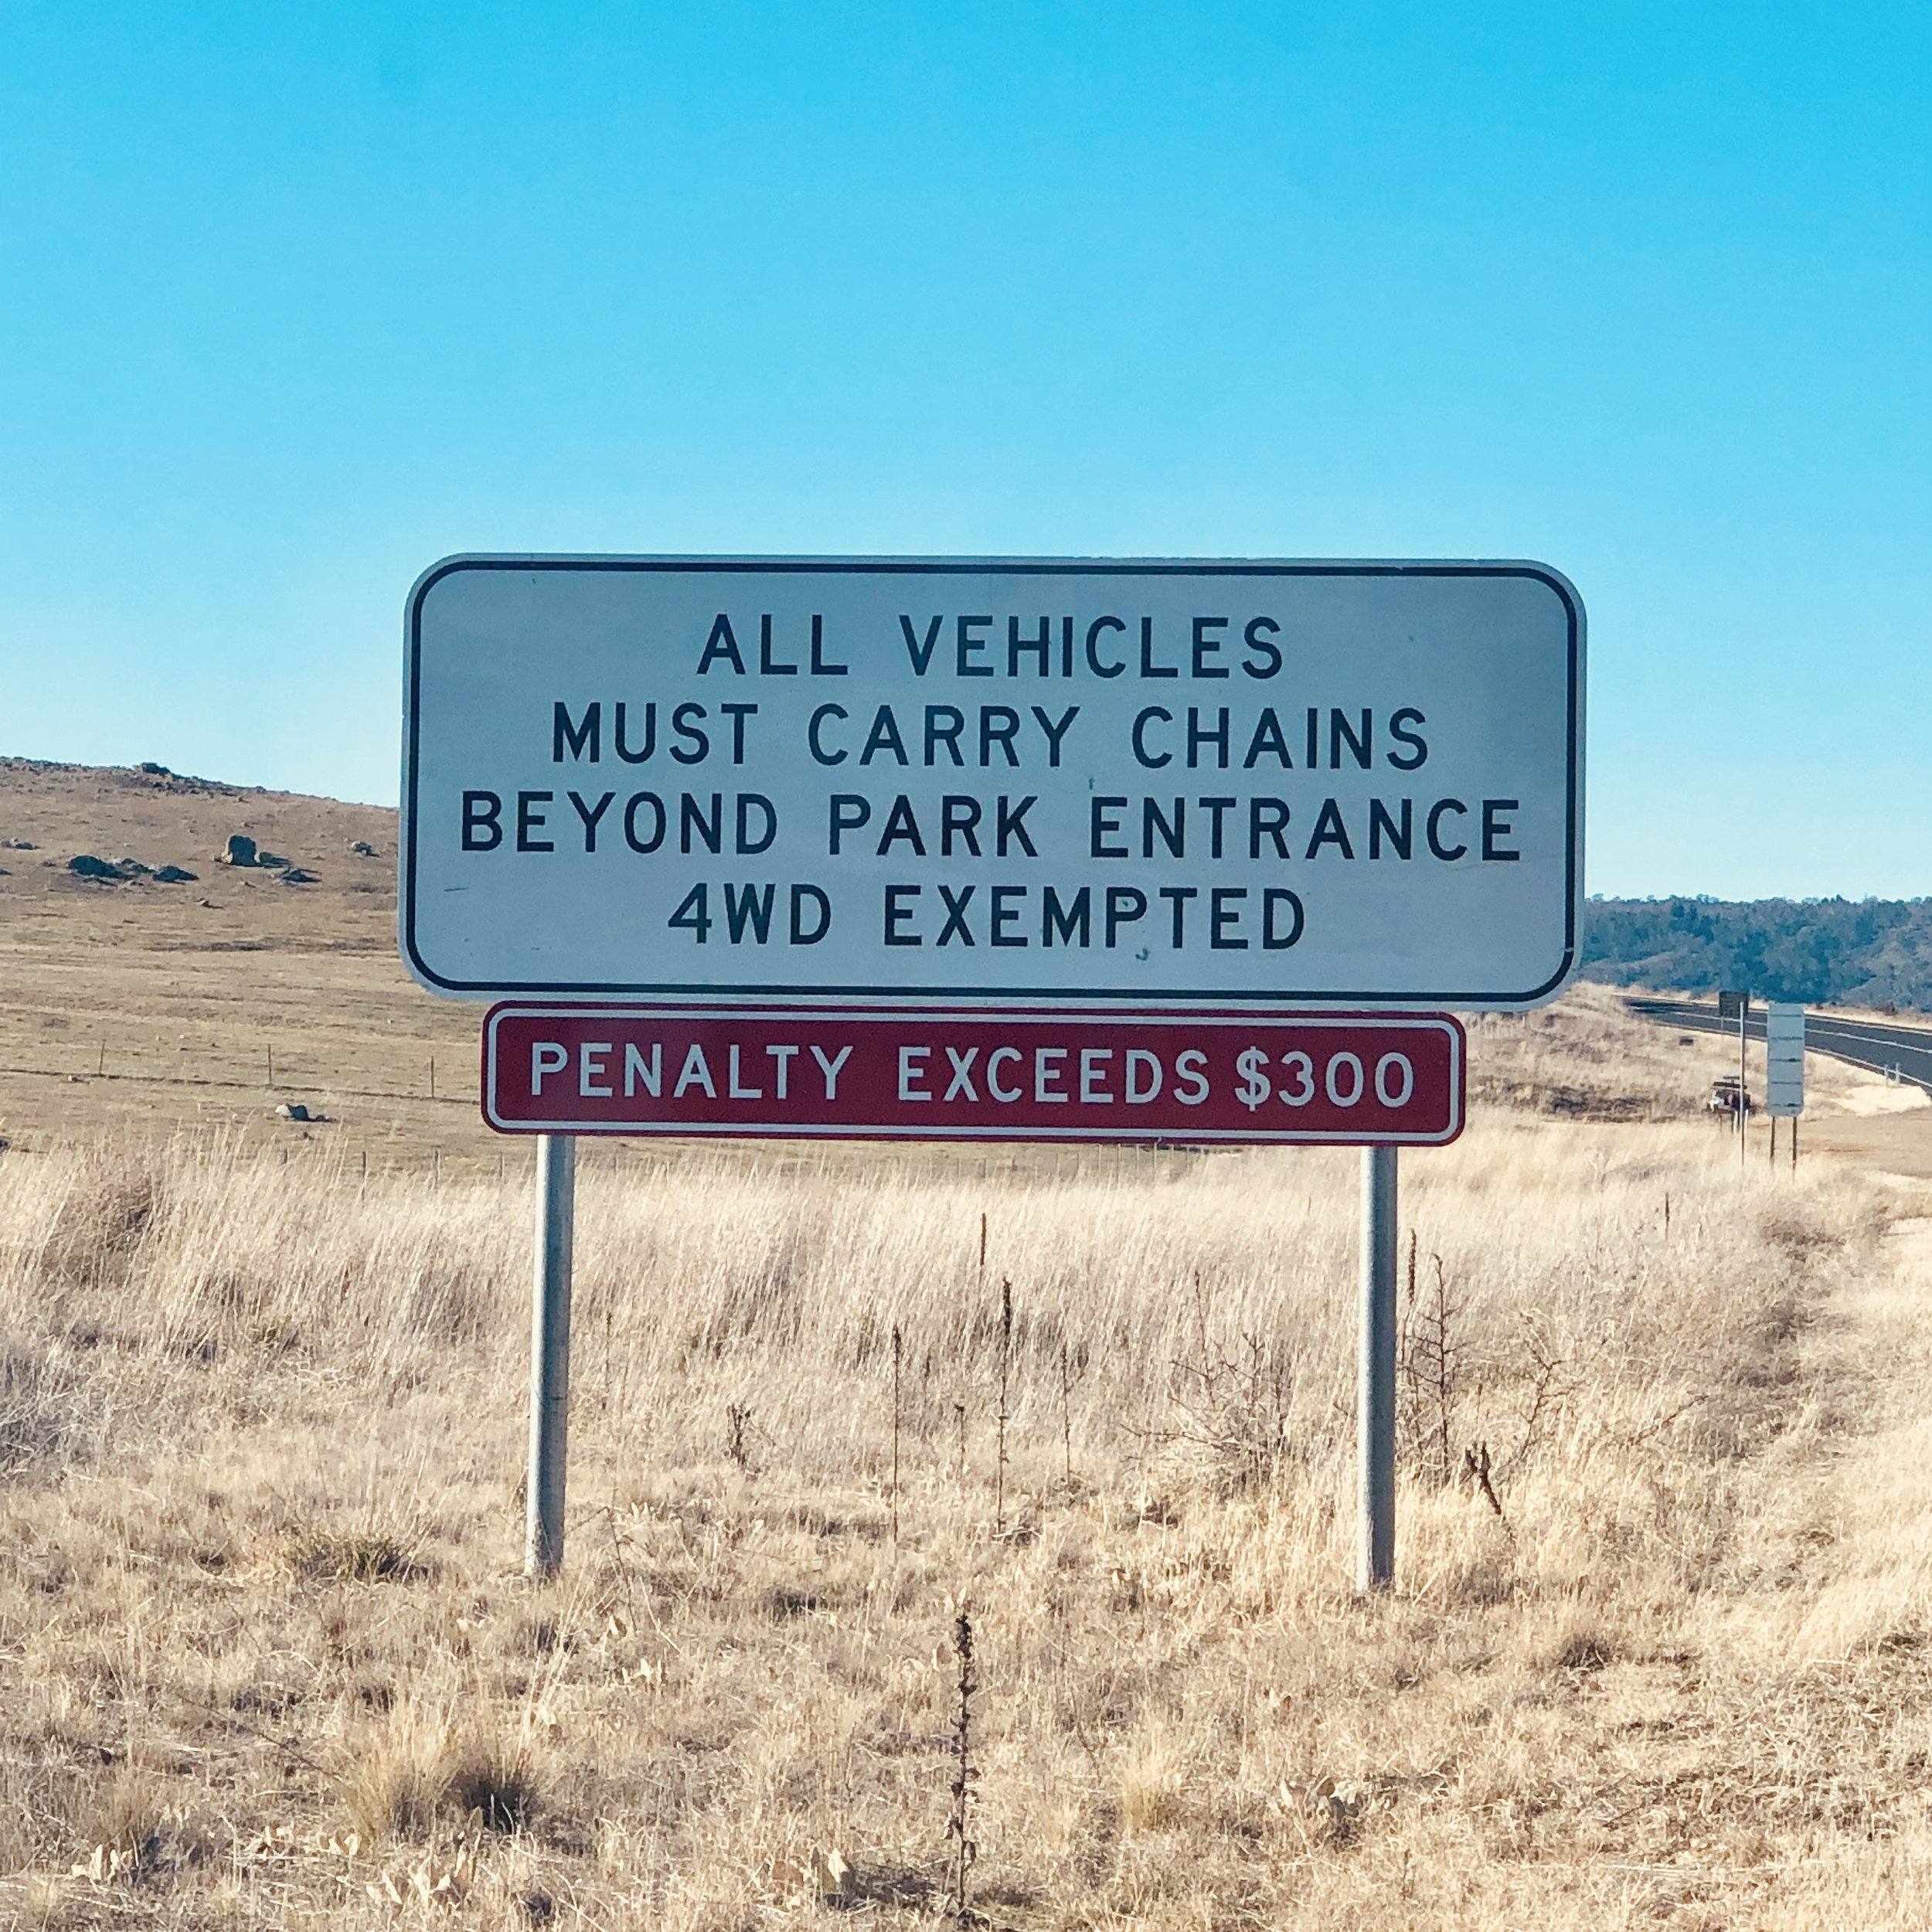 CHAINS SIGN